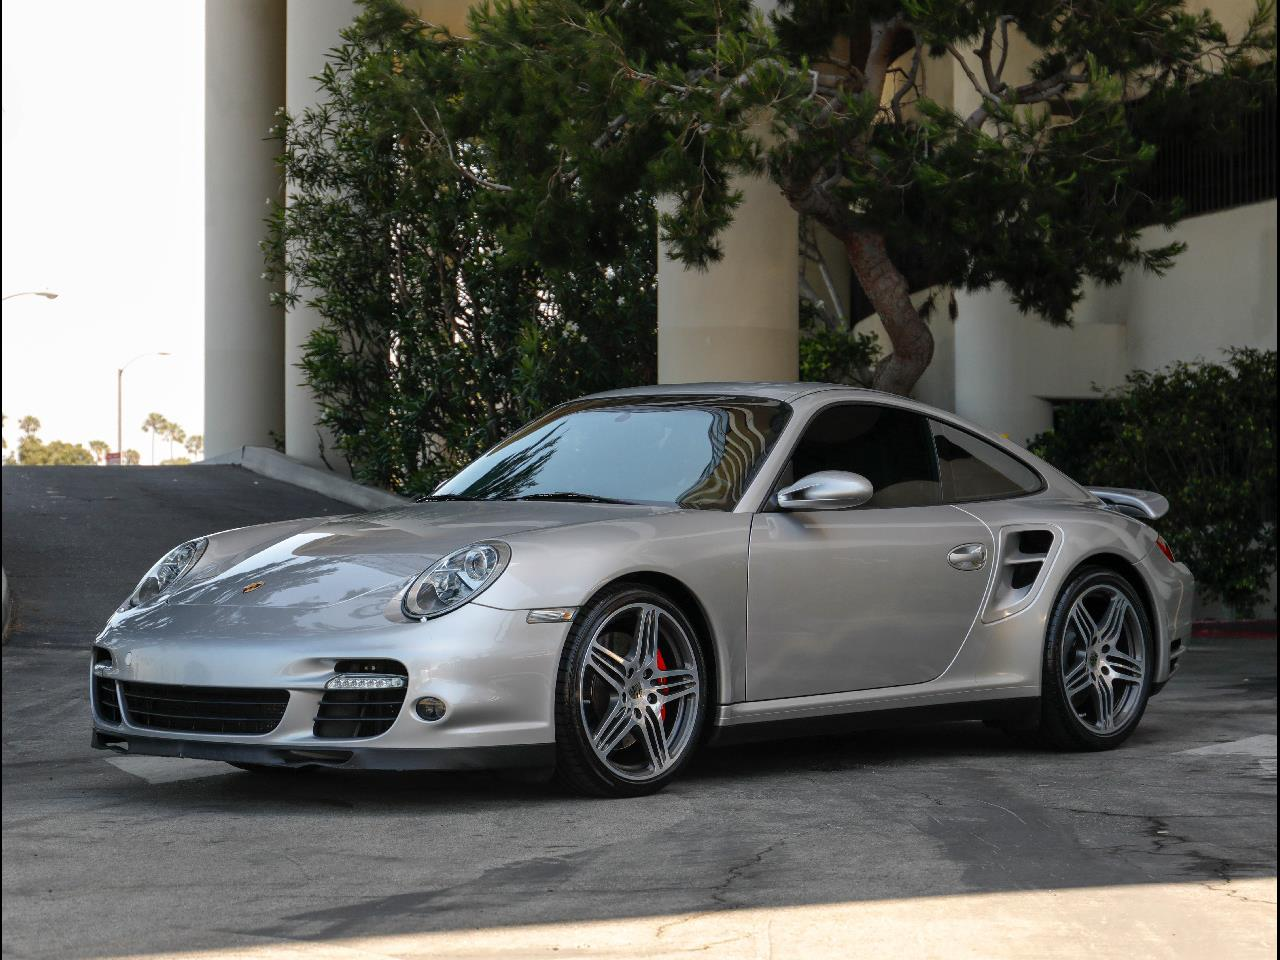 Large Picture of 2007 Porsche 911 Turbo - $71,500.00 Offered by Chequered Flag International - QG8Z